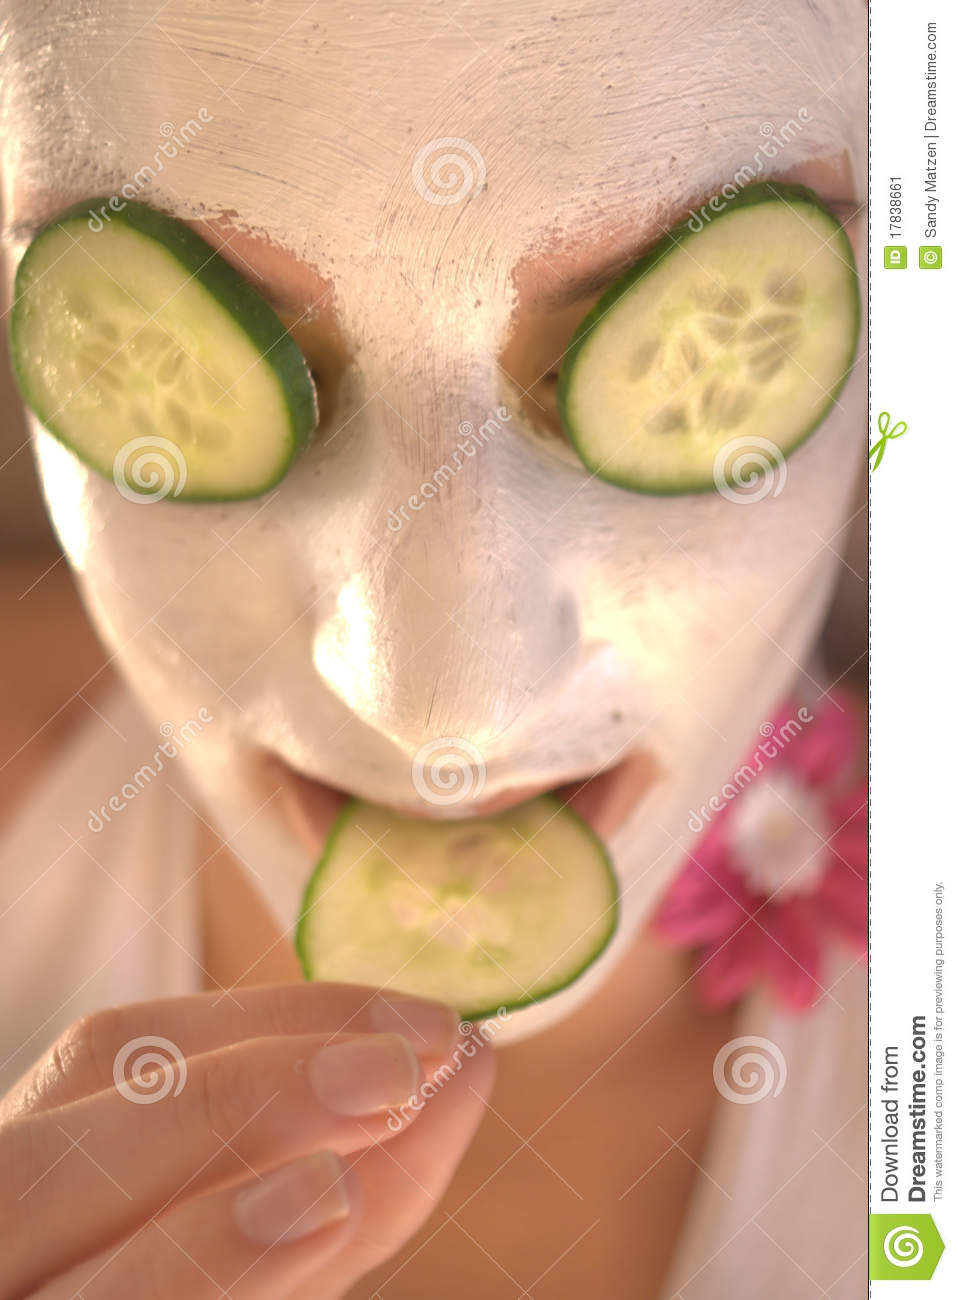 how to make a natural face mask